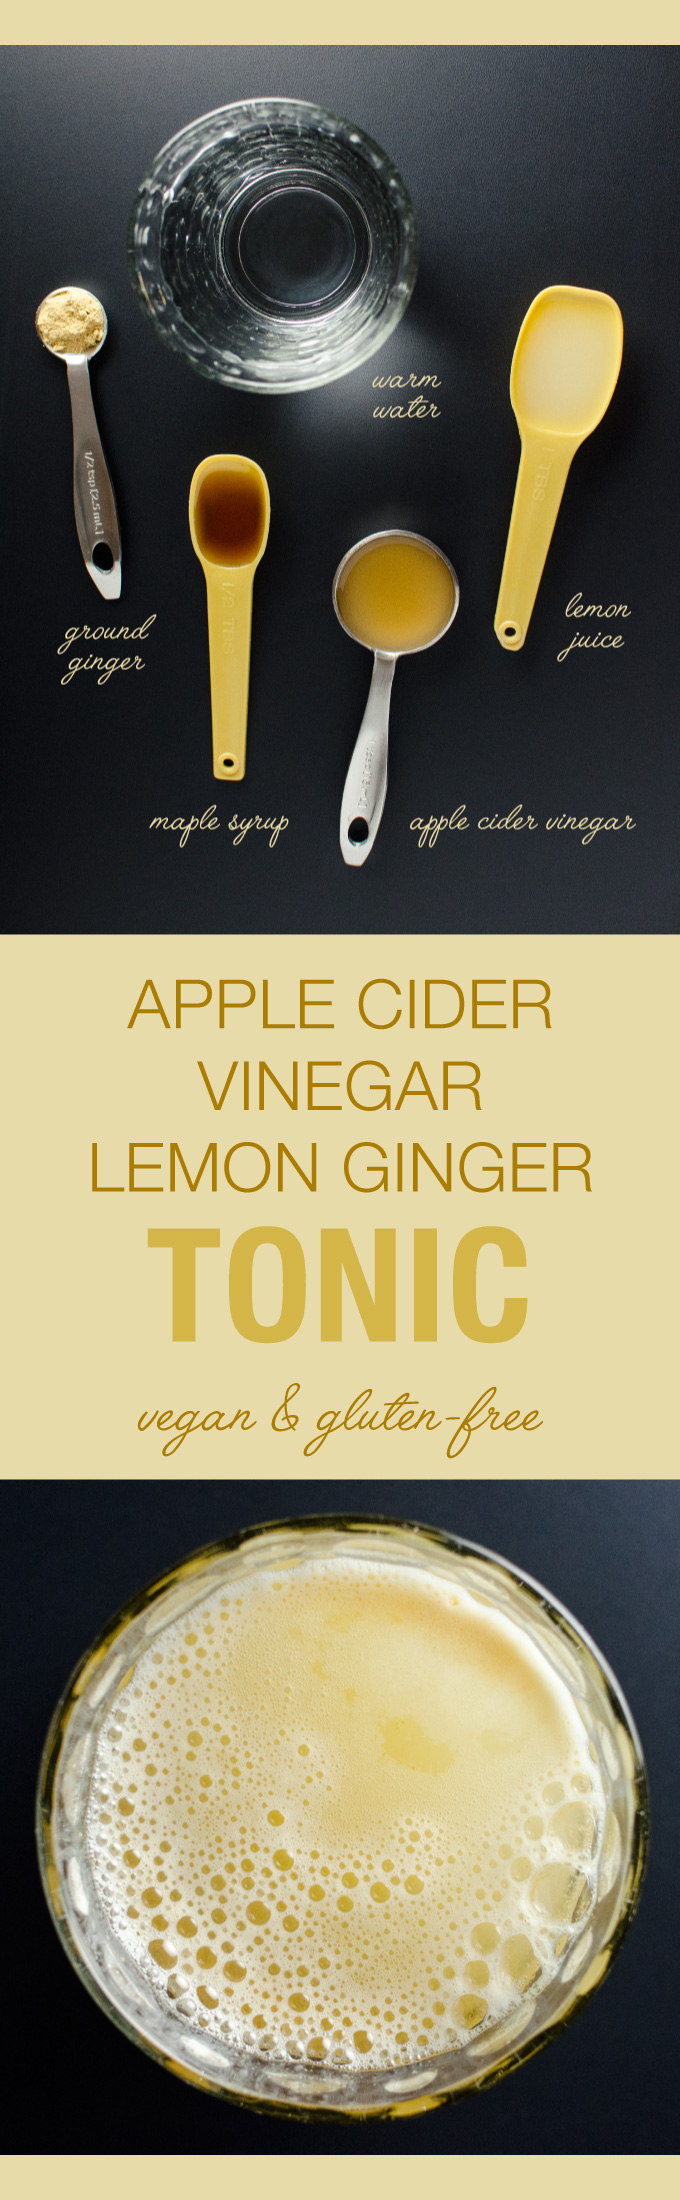 Apple Cider Vinegar Lemon Ginger Tonic - a pleasantly tart and spicy drink that just might give you the edge you need to fight off nasty germs! | Veggieprimer.com